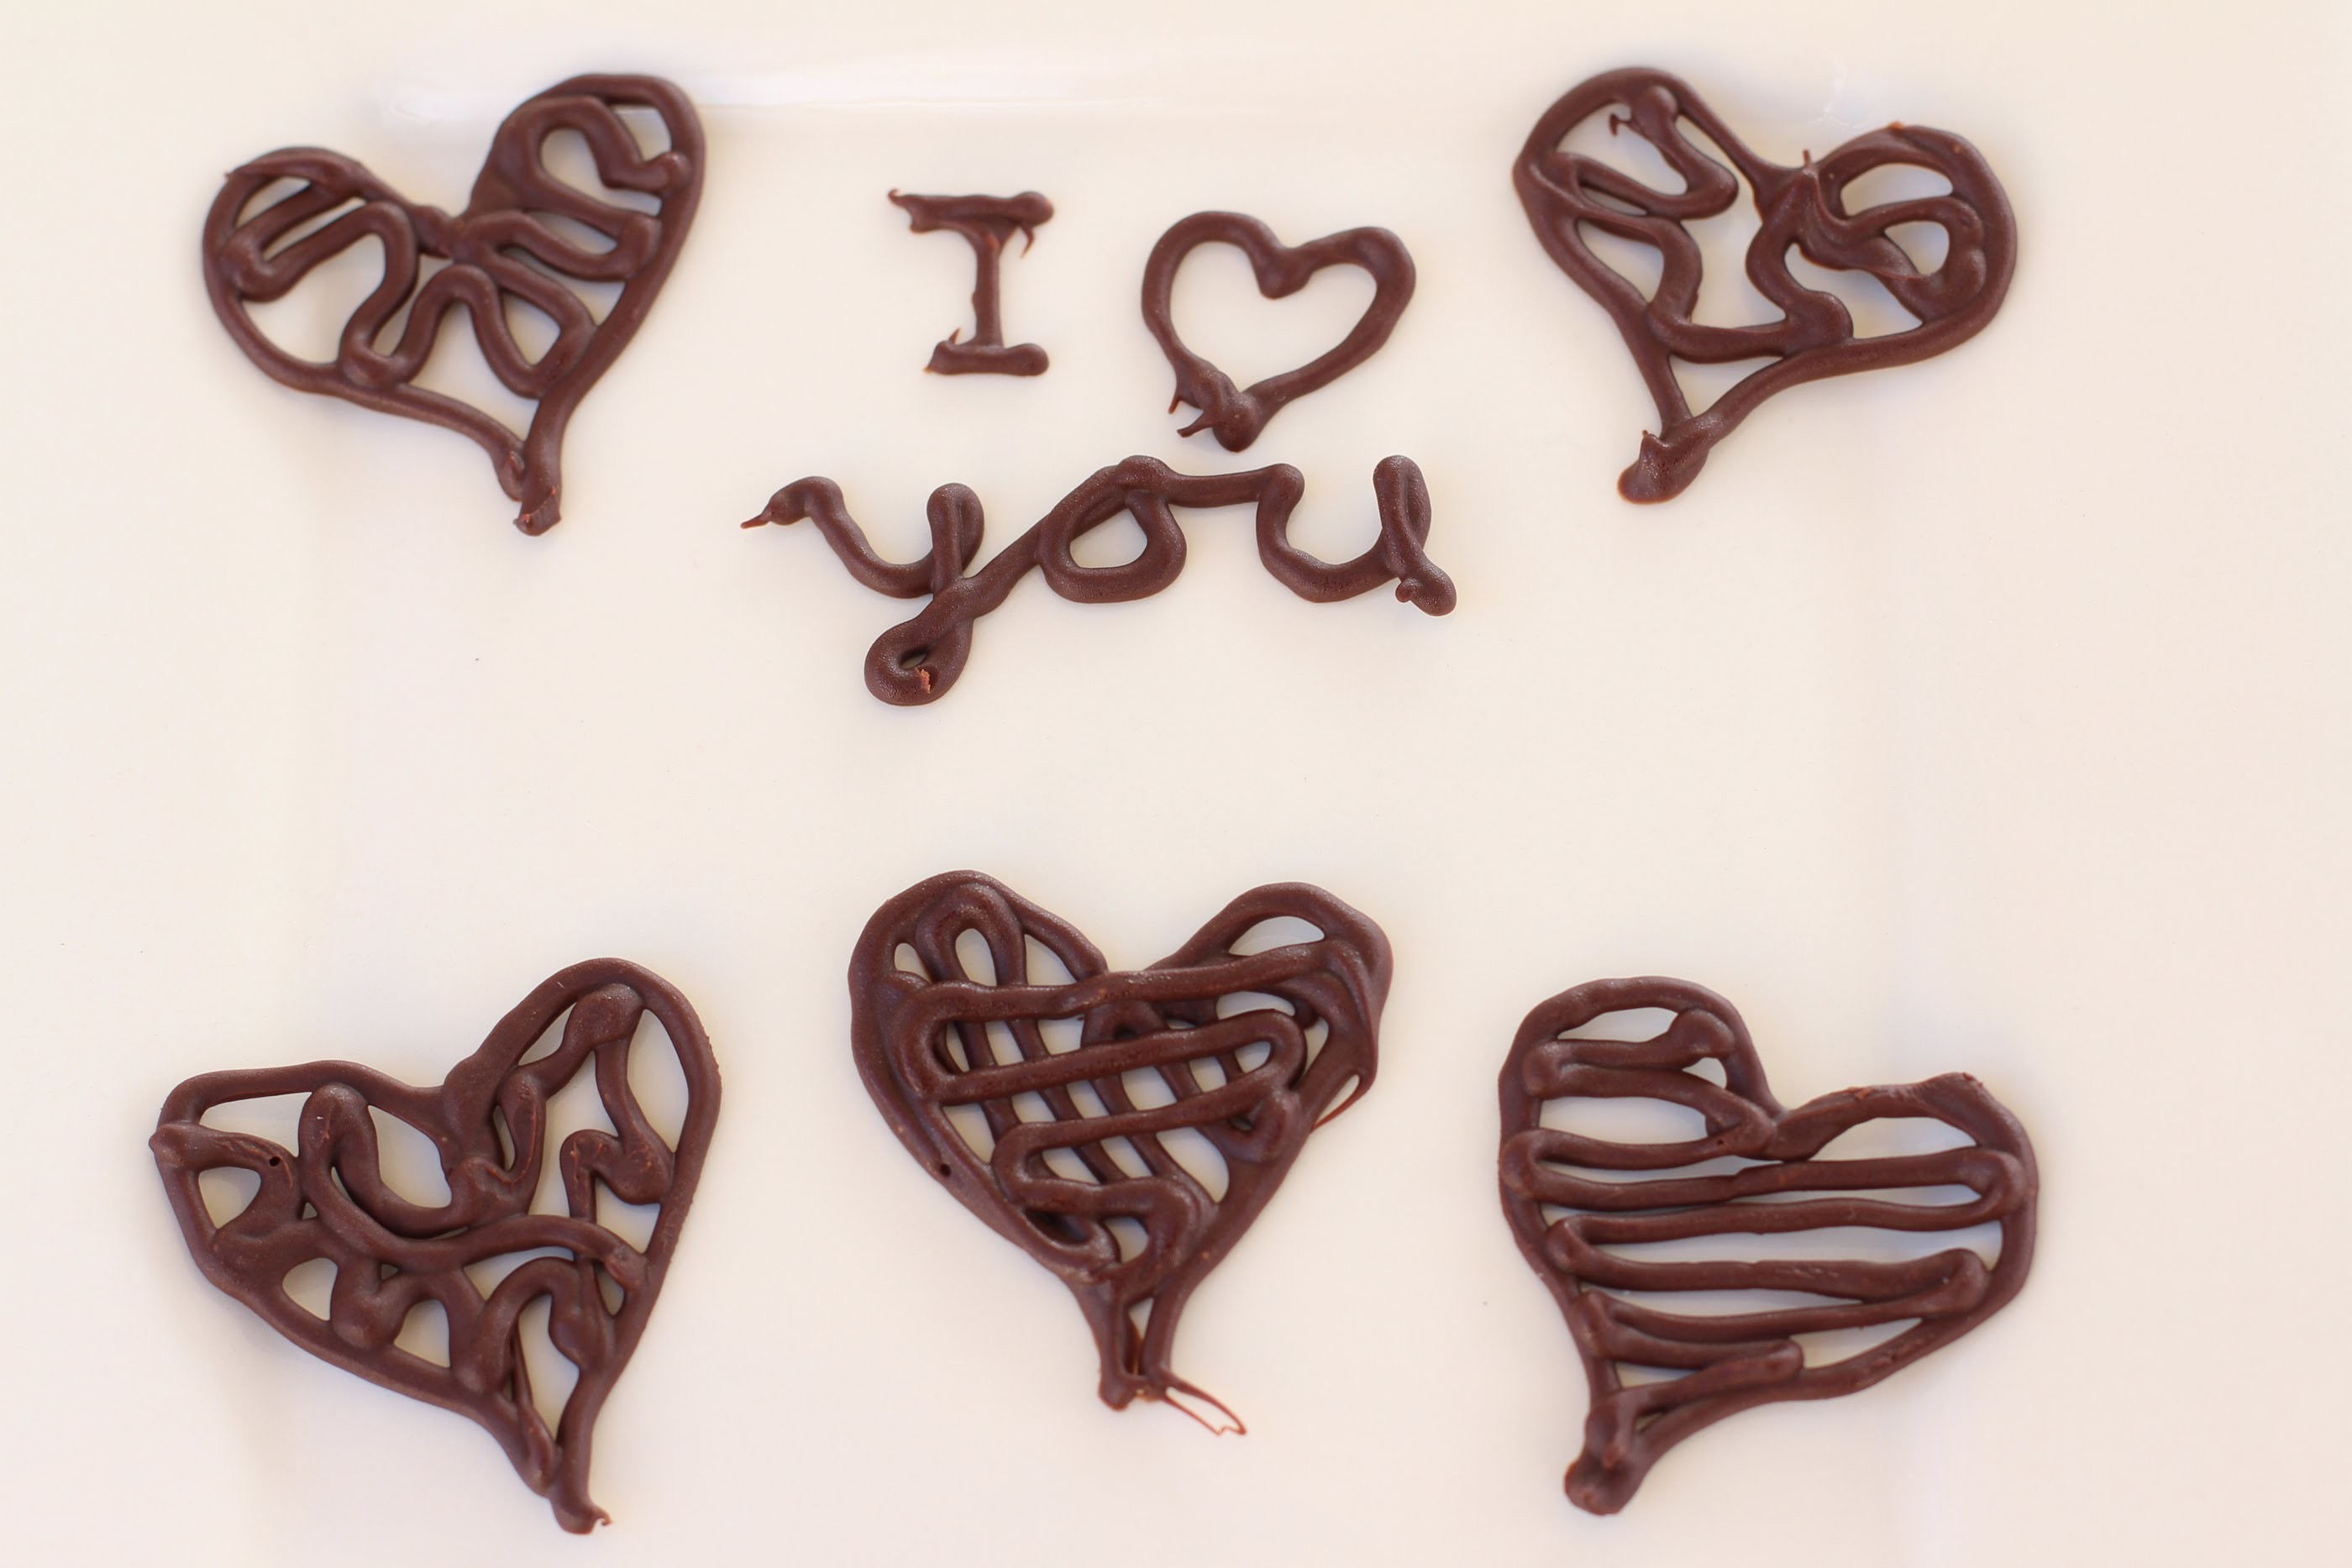 How To Make Chocolate Heart Decorations by Rockin Robin